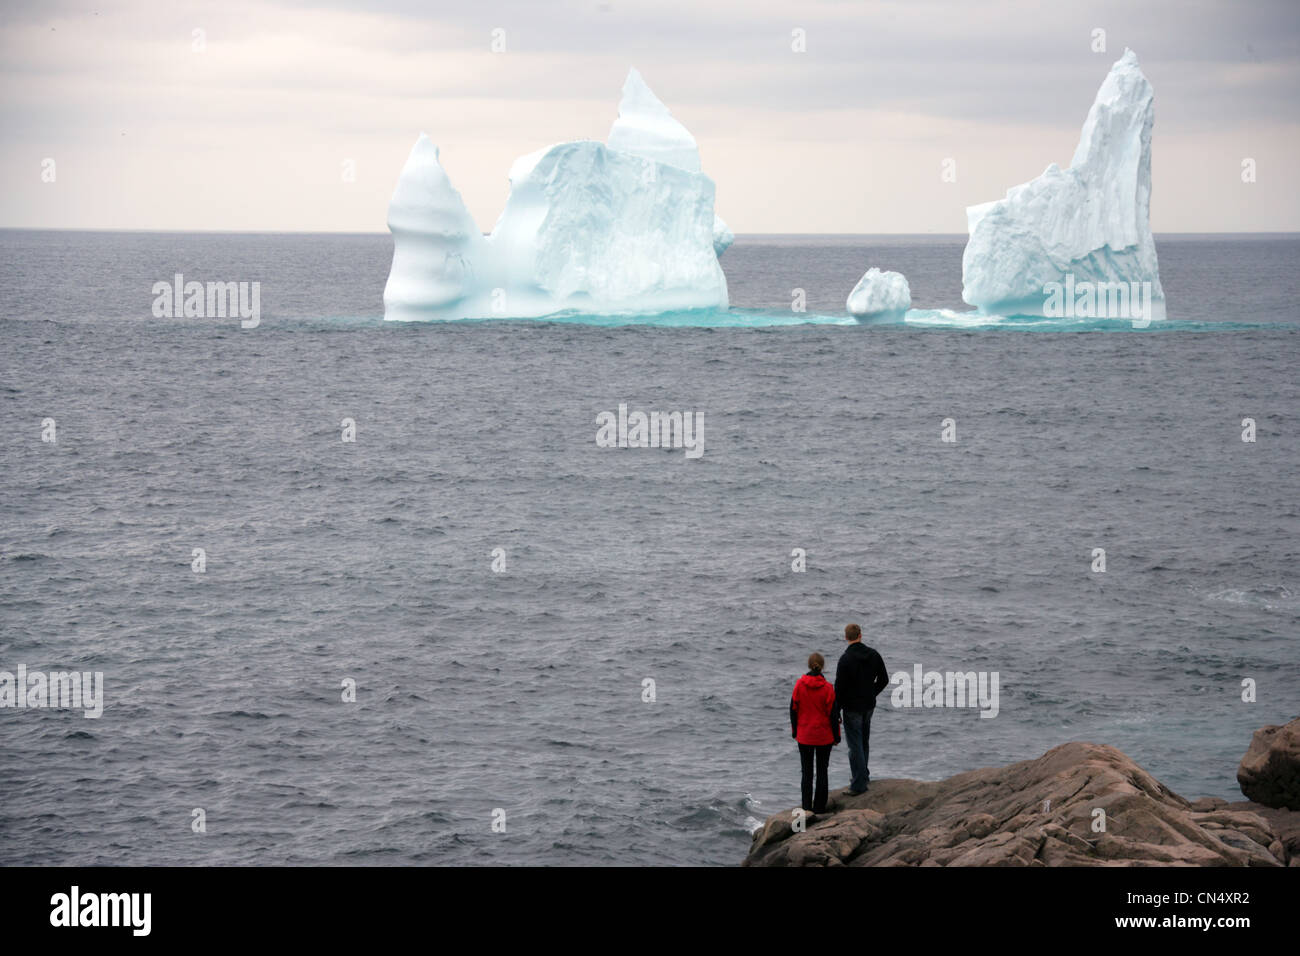 Couple looking out at an Iceberg, Cape Spear, St. Johns, Newfoundland - Stock Image